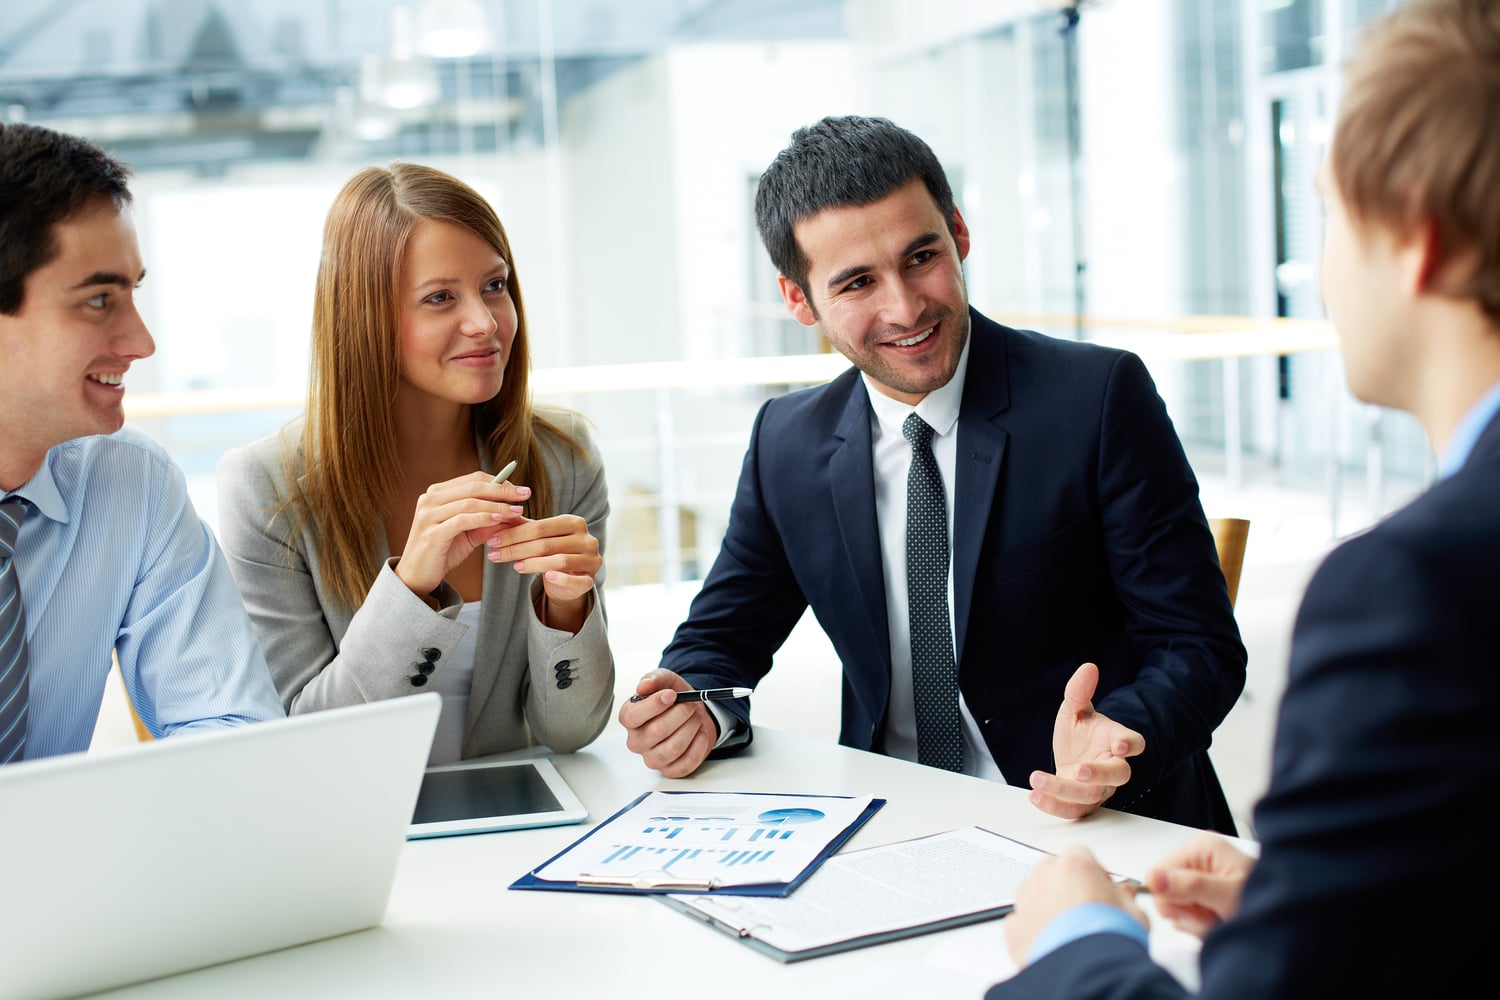 Shaping an RFP: Steps to Successfully Sell to the Federal Government